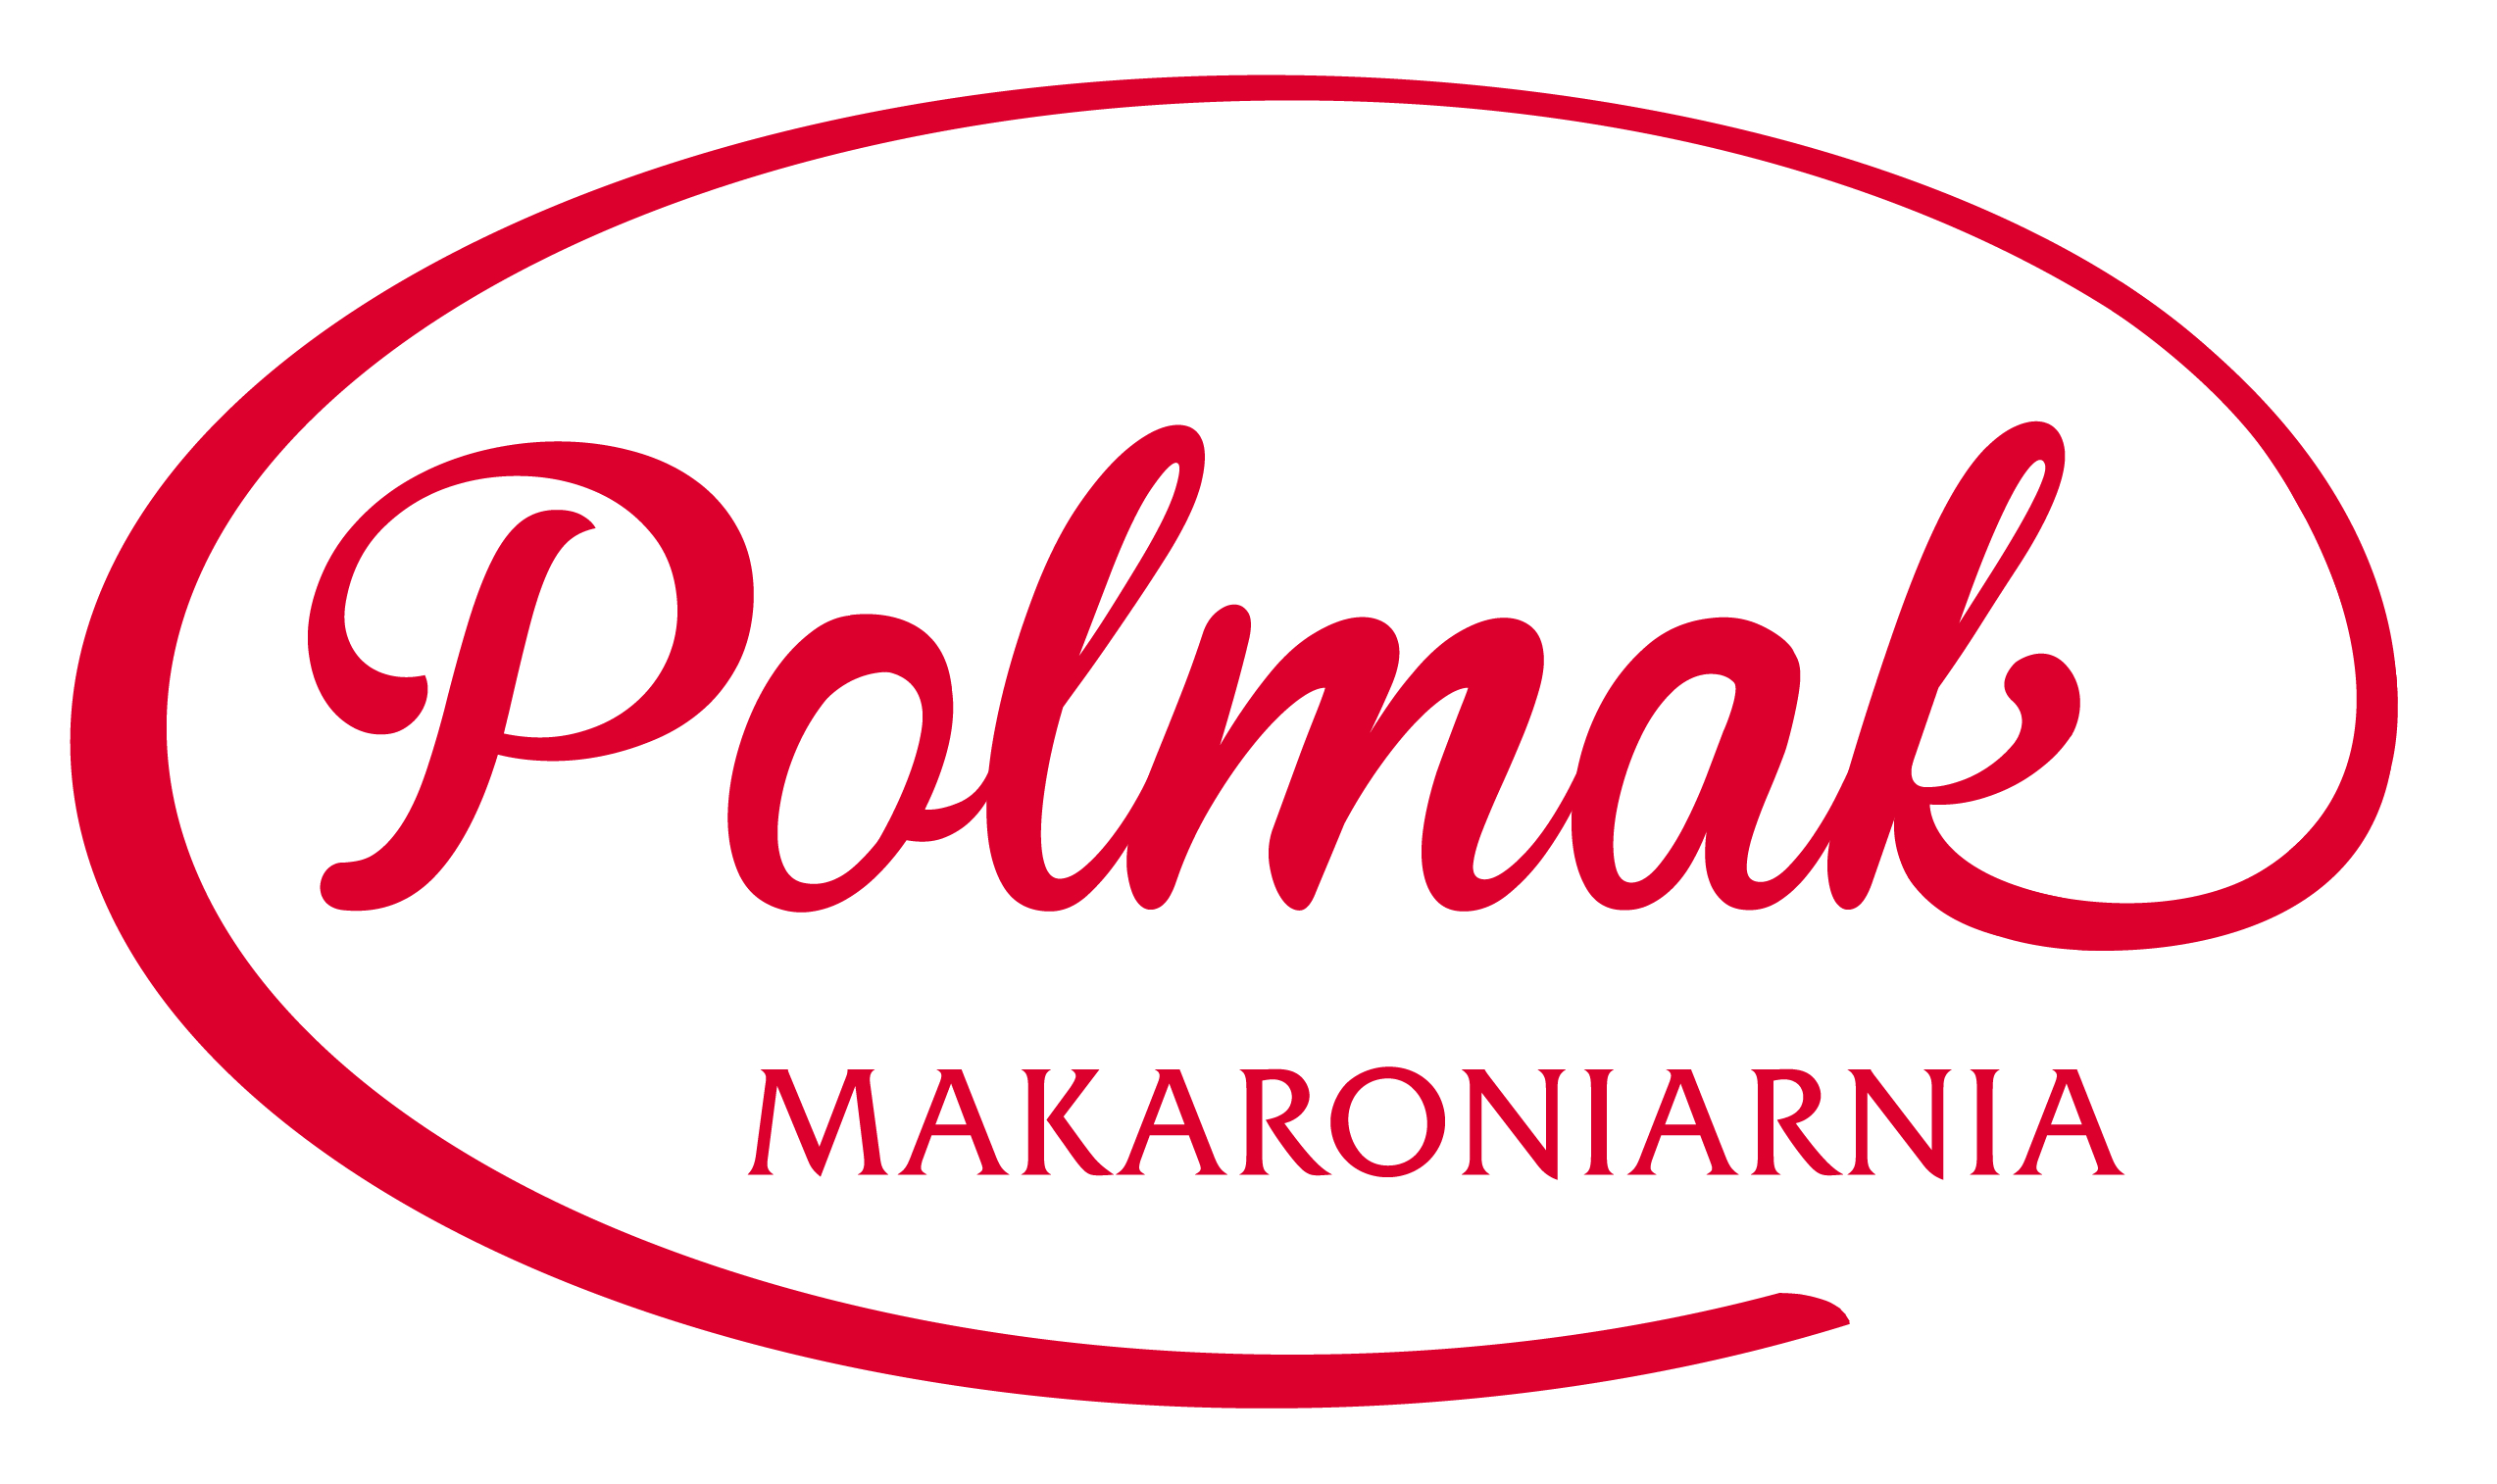 Polmak_MAKARONIARNIA